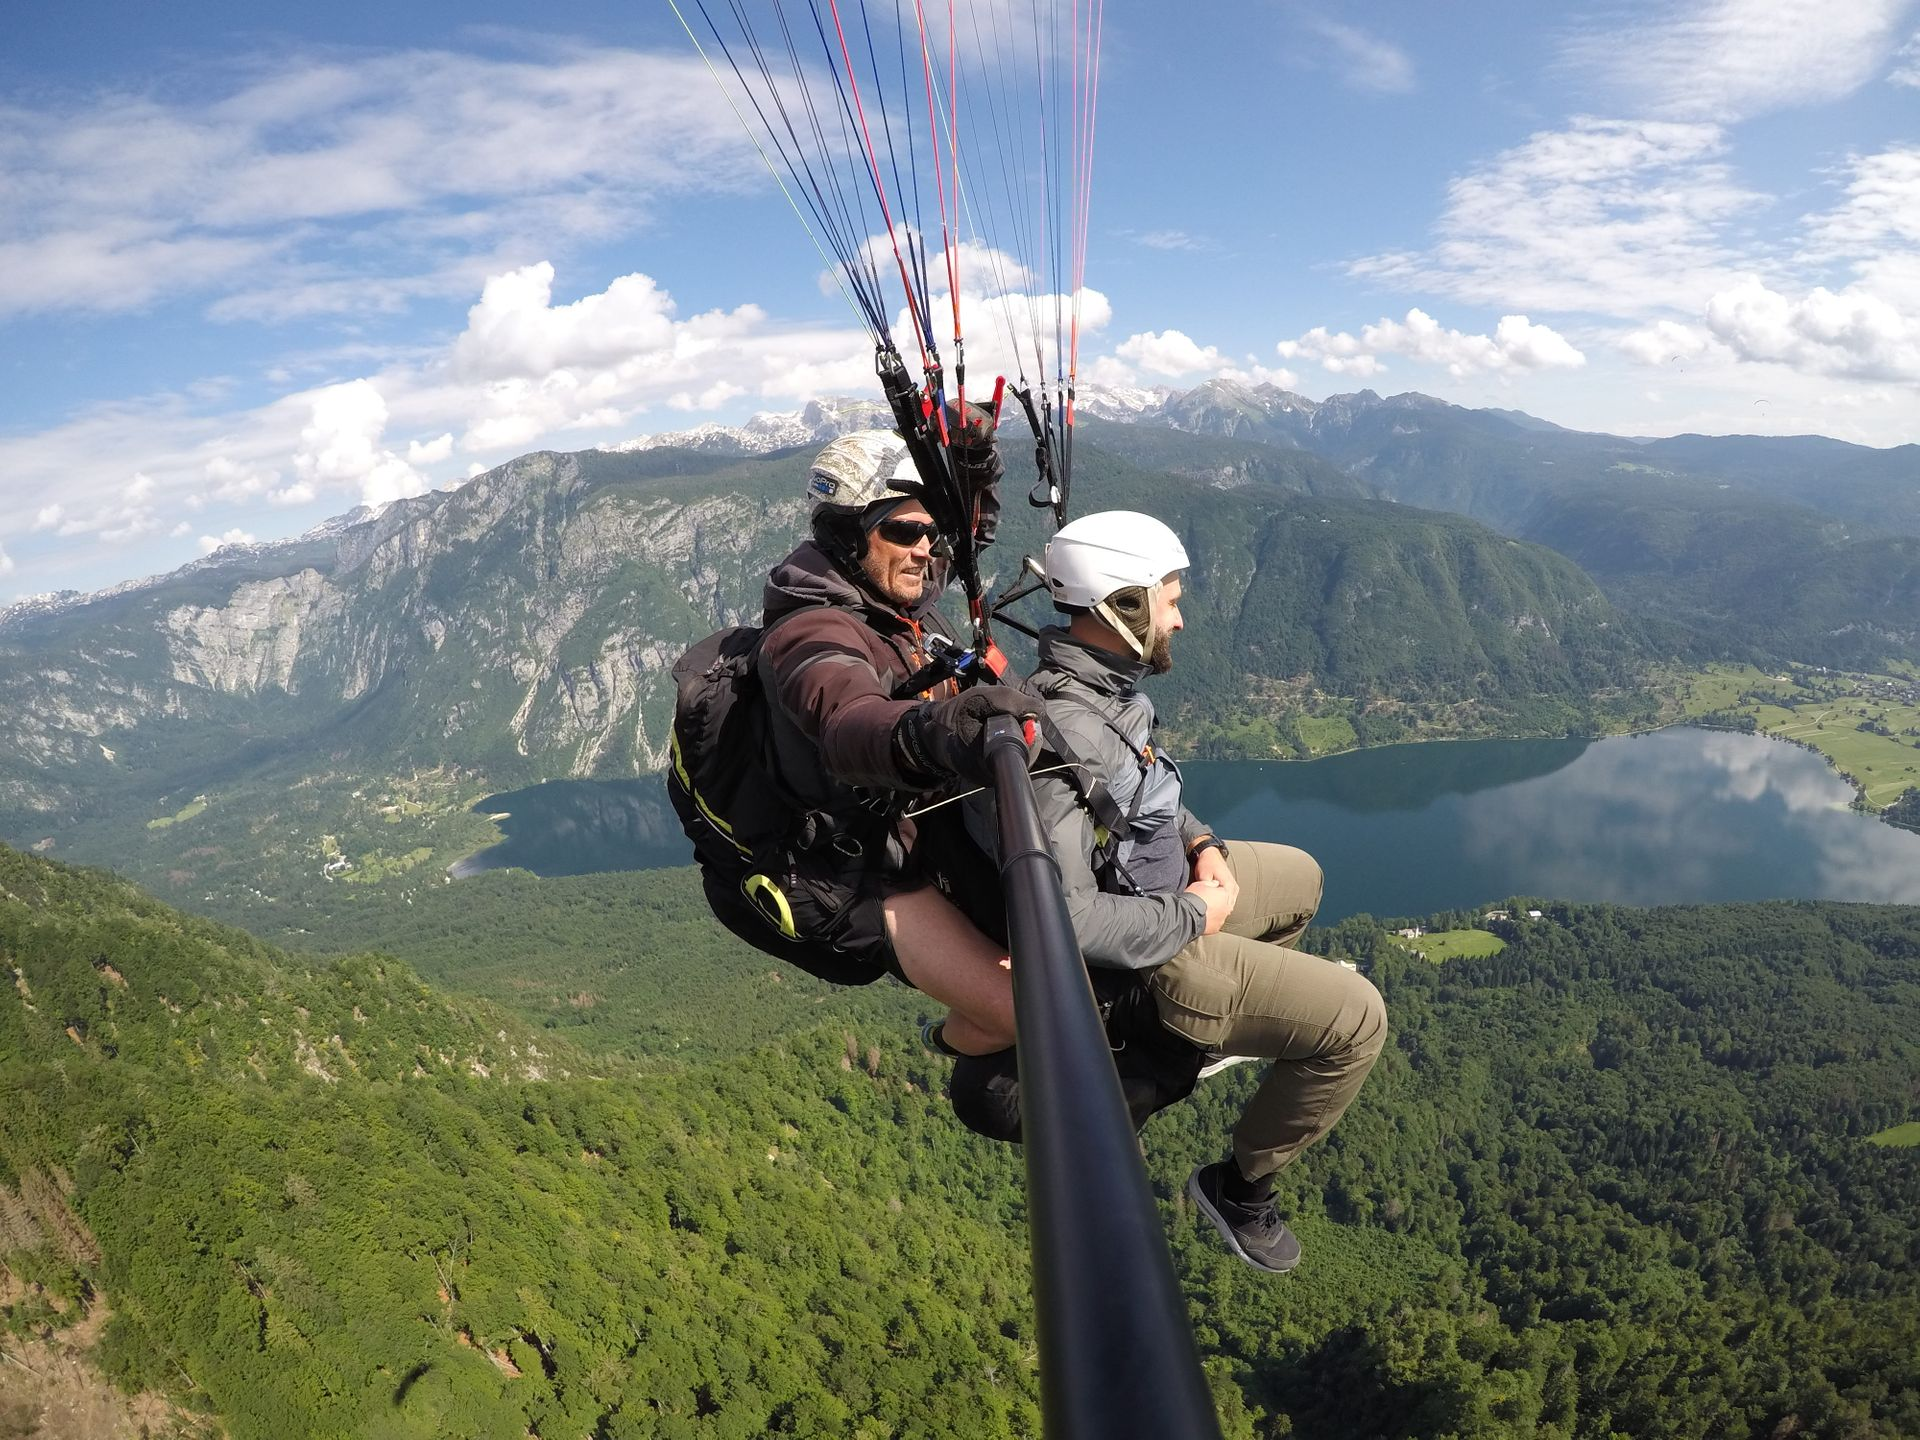 Tandem Flight Over Lake Bohinj Bohinj Lake, Slovenia #ca772a1a-9b25-4acc-89c5-cdccbf730250